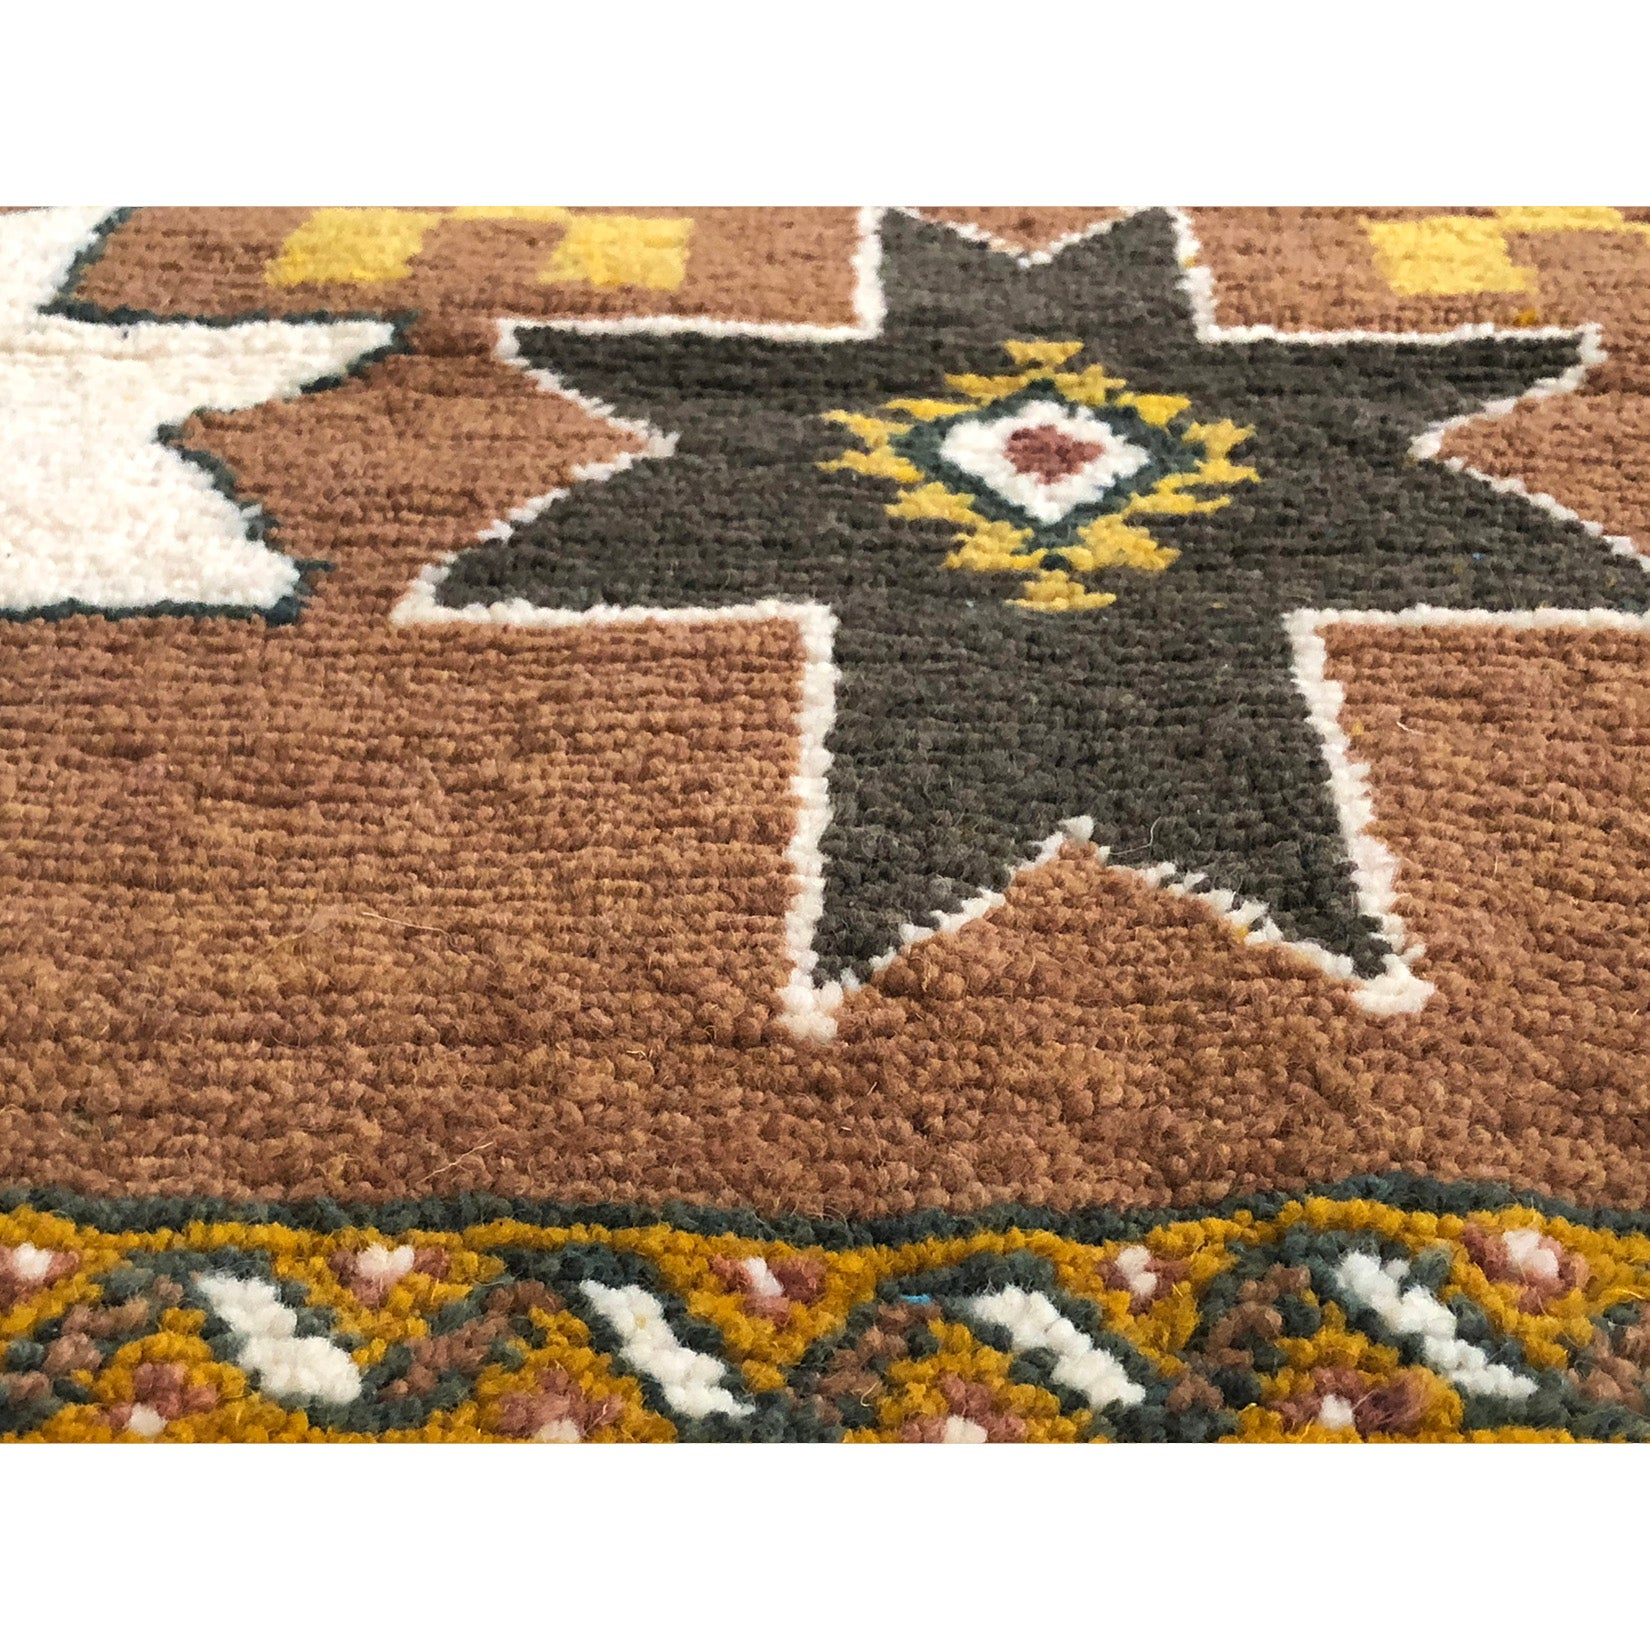 Modern interior brown berber carpet  - Kantara | Moroccan Rugs